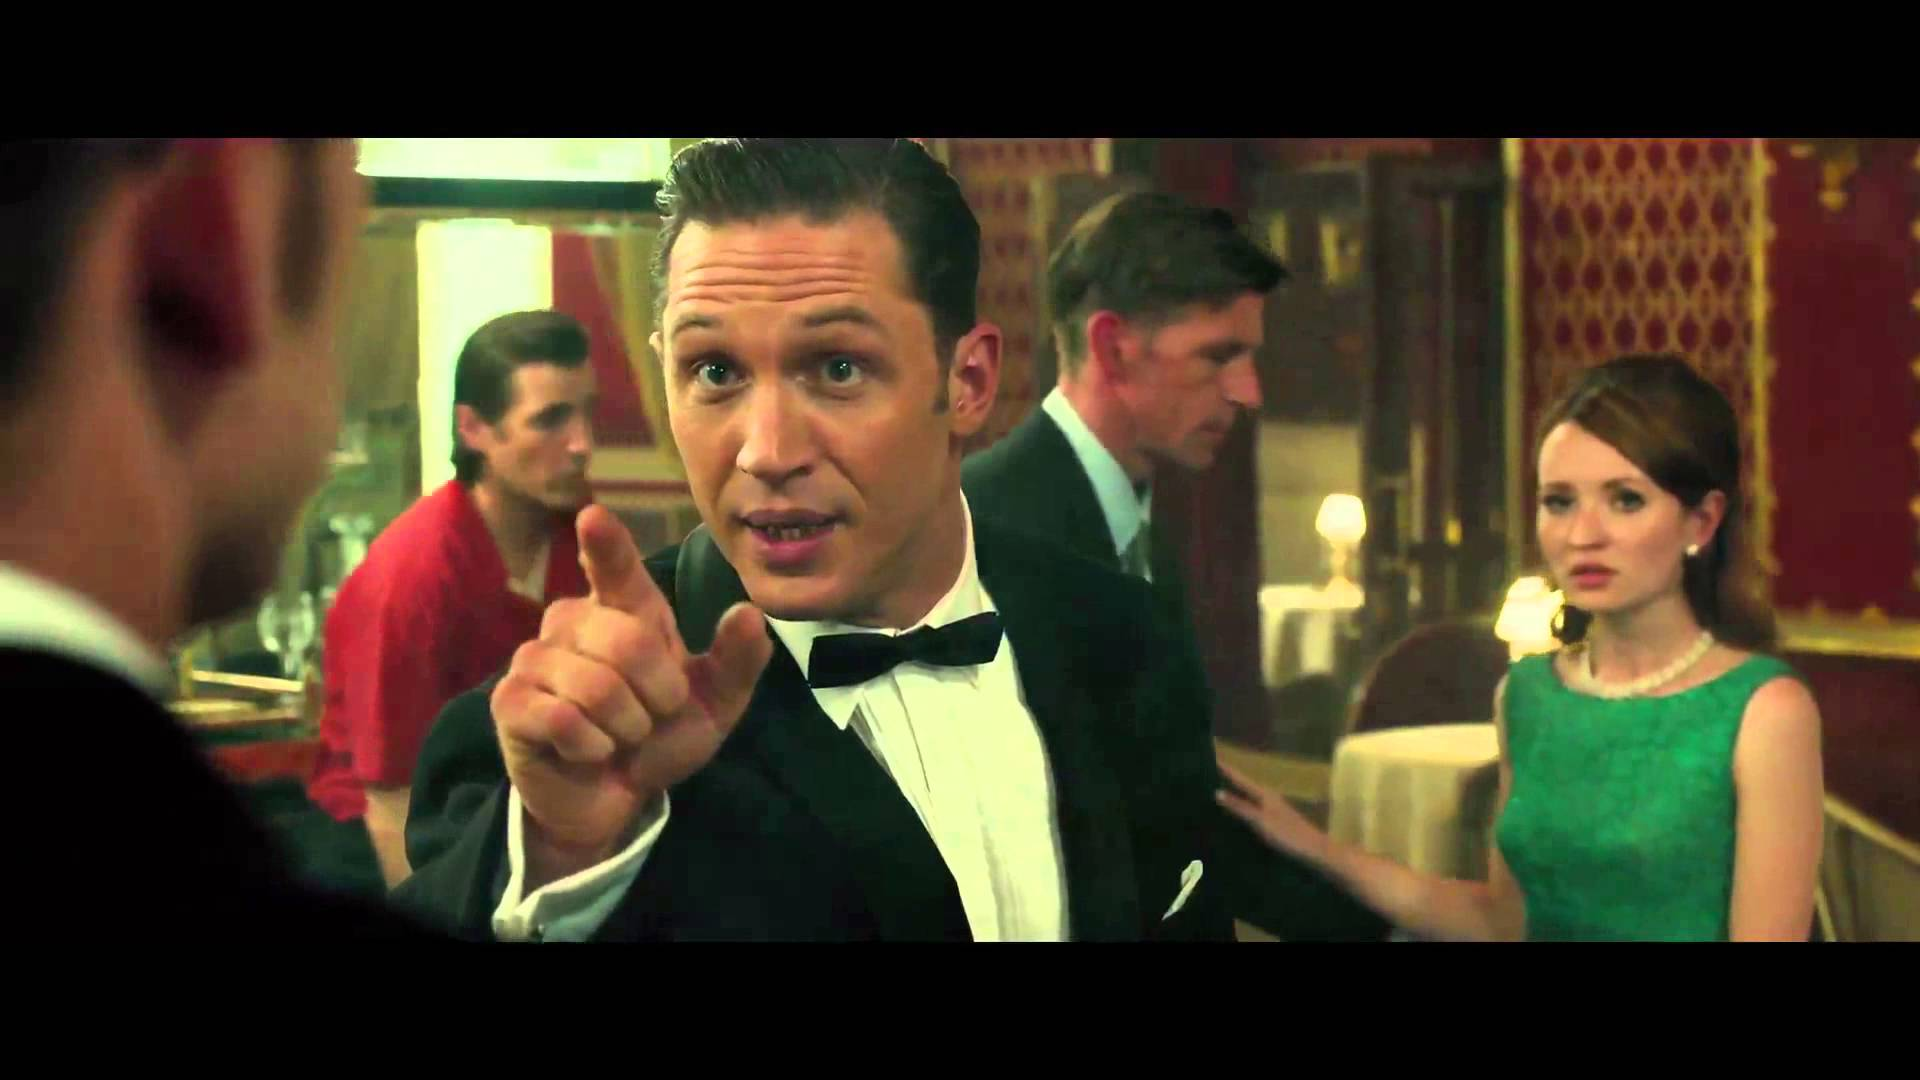 LEGEND – TOM HARDY PLAYS THE KRAY TWINS